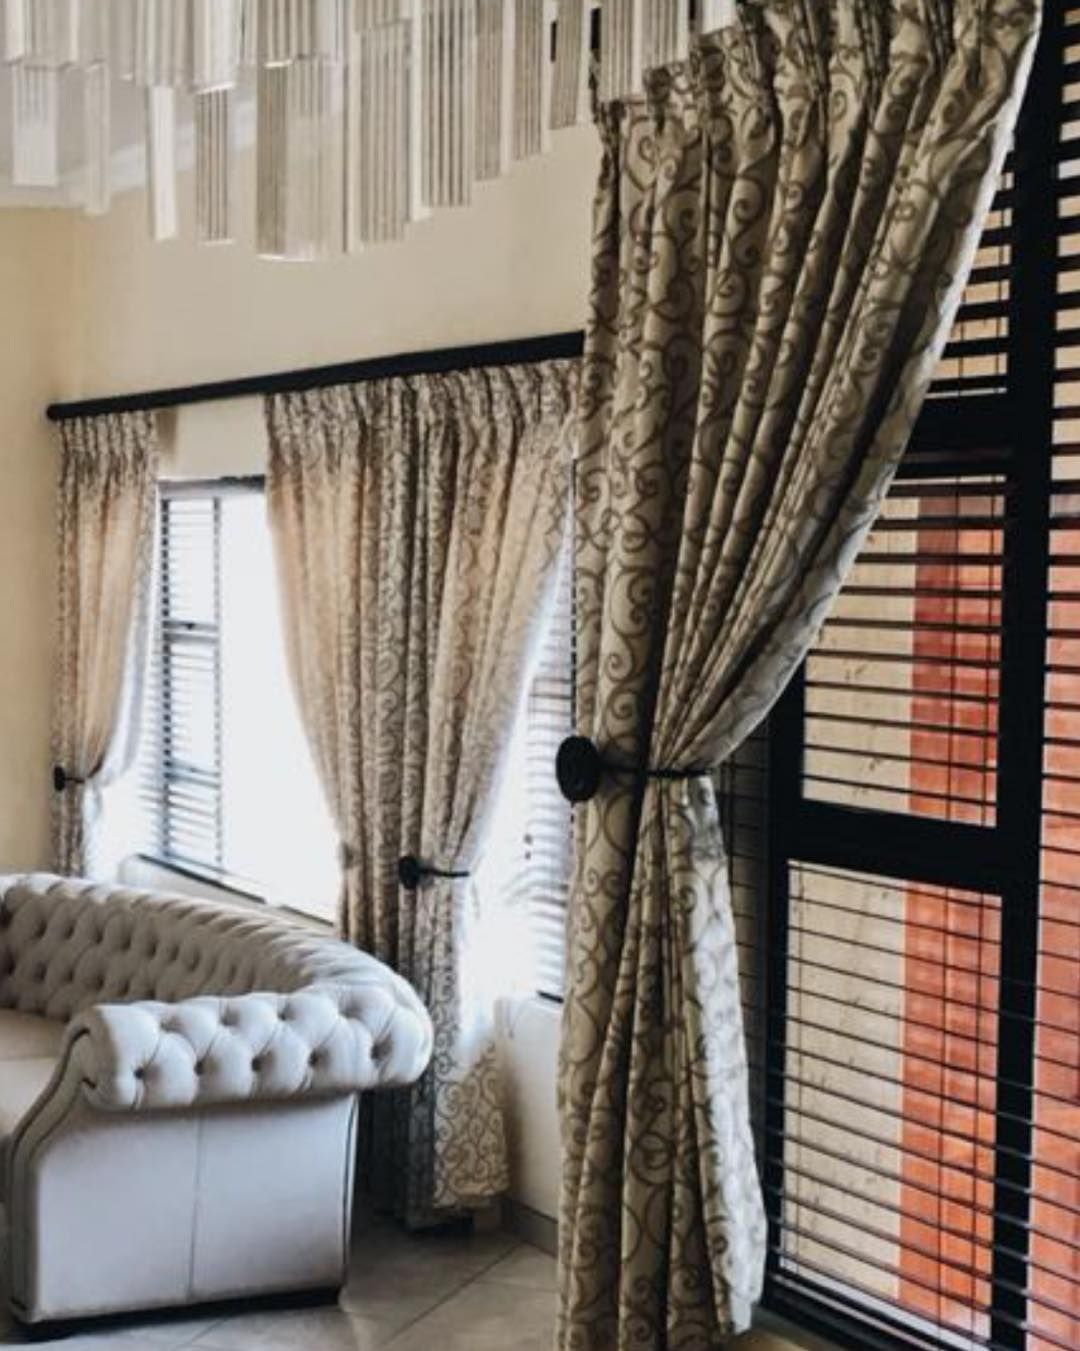 6 Eager Tips Blinds Curtain Kitchen Farmhouse Blinds Counter Tops Blinds And Curtains Cleanses Living Room Blinds Curtains With Blinds Vertical Window Blinds